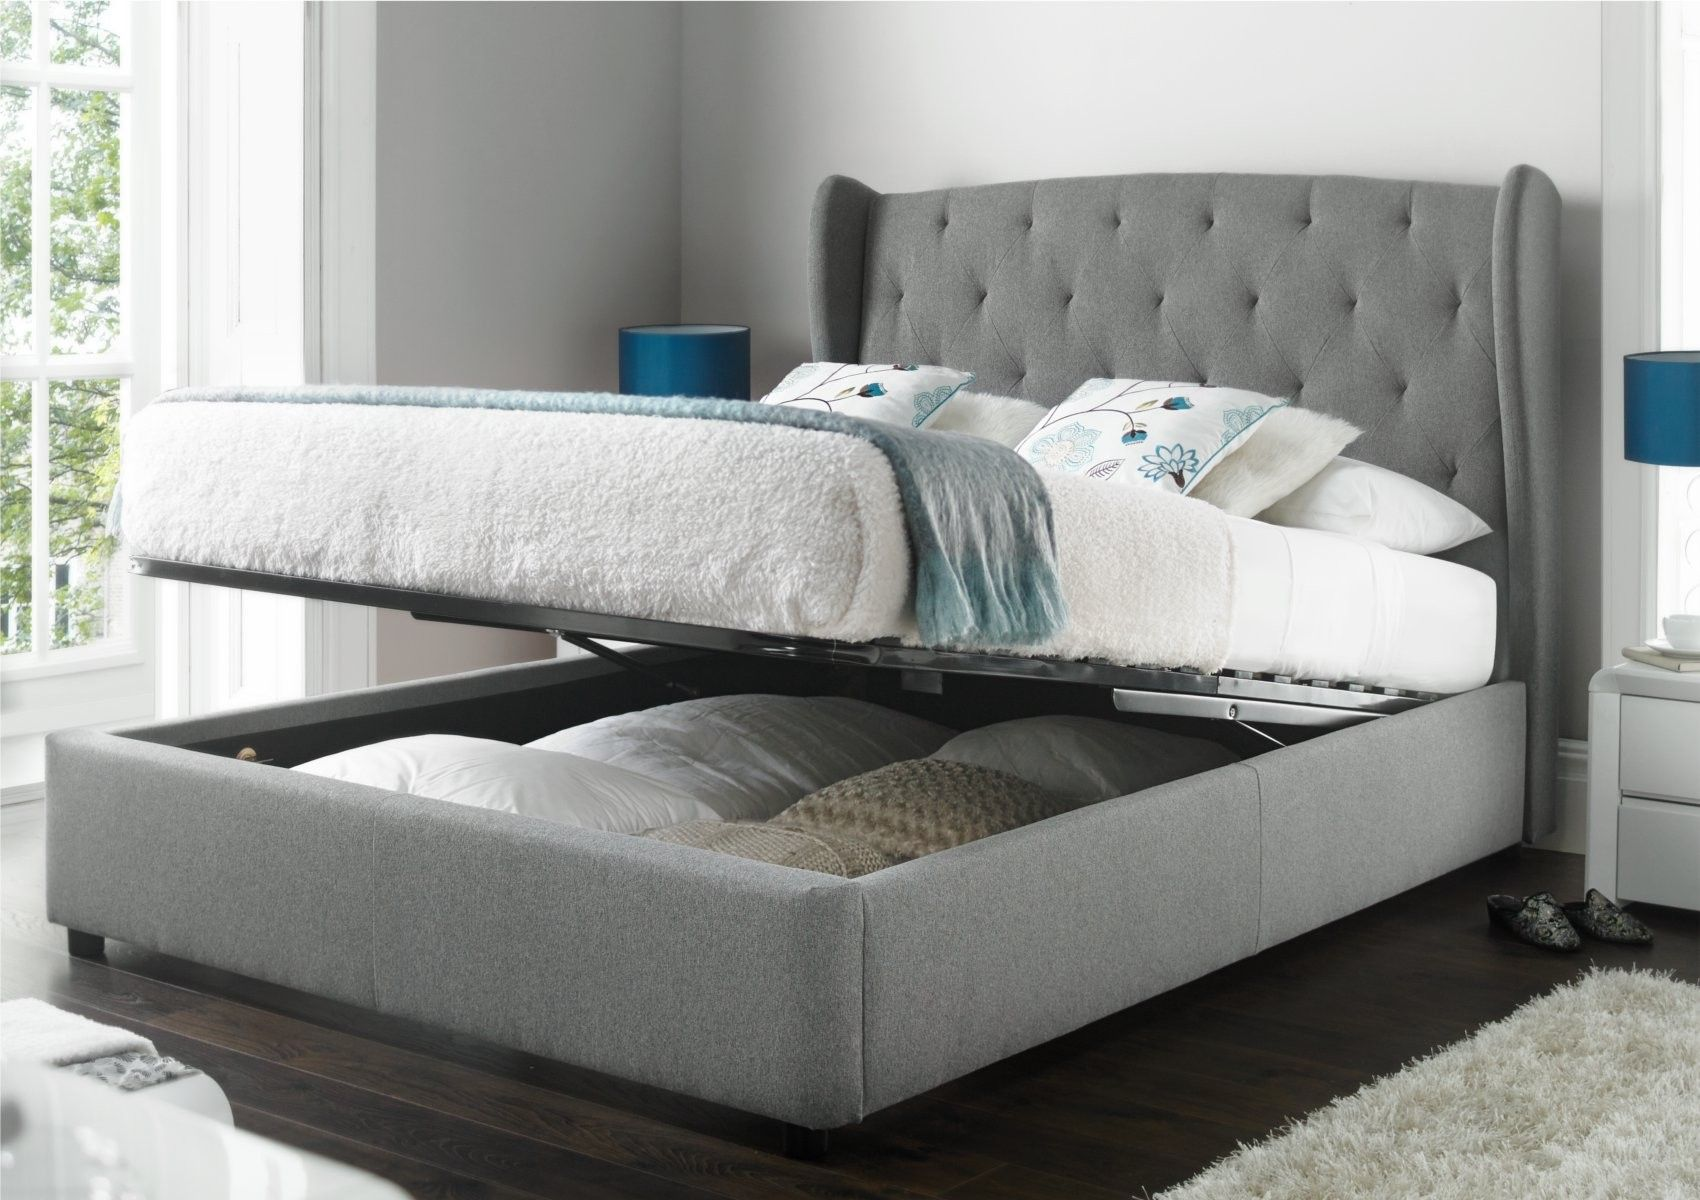 Upholstered wing backed beds are one of the latest trends